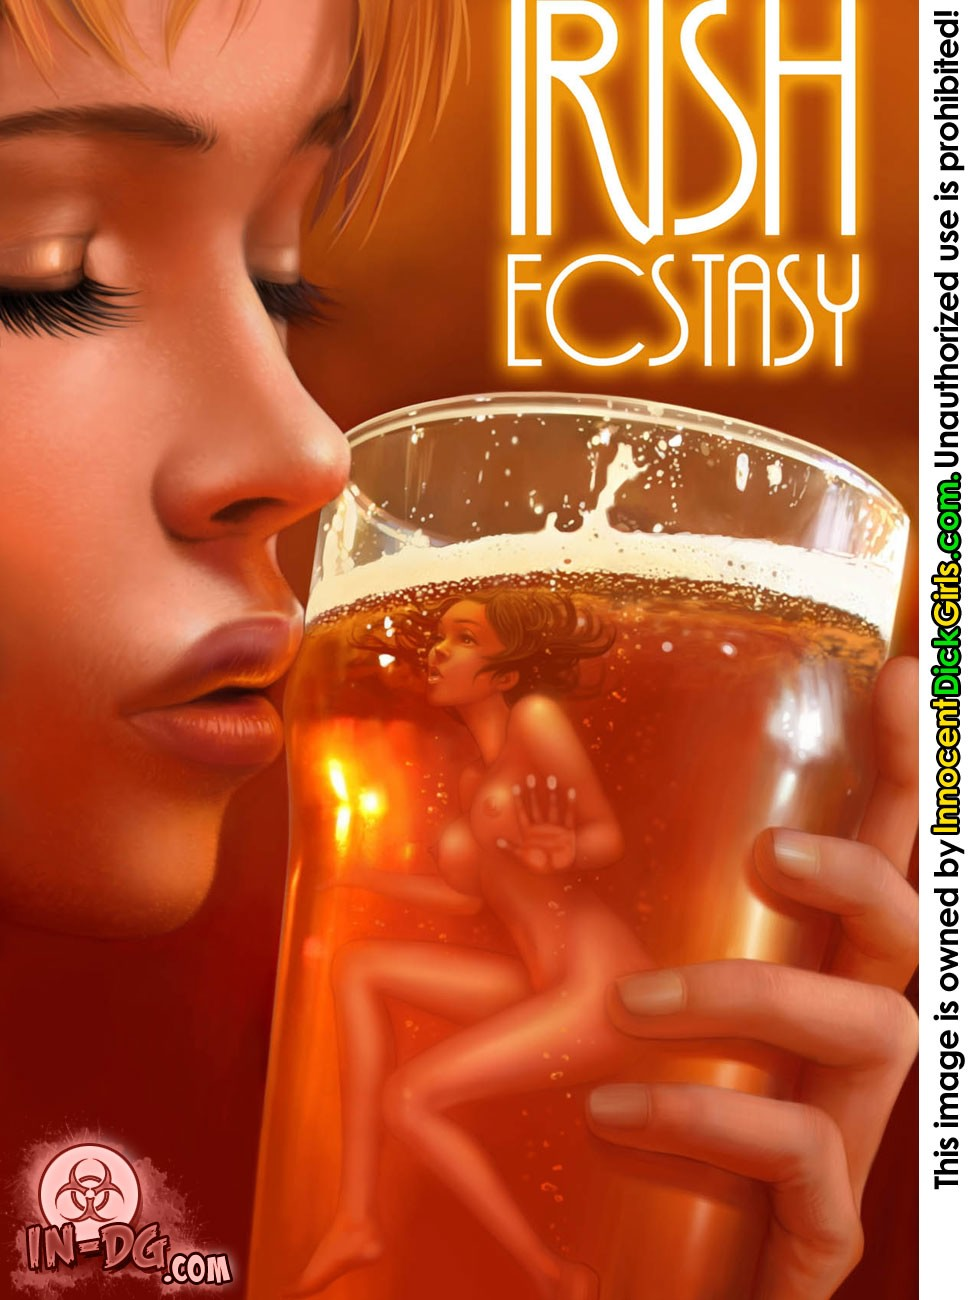 Irish Ecstasy futa comic cover